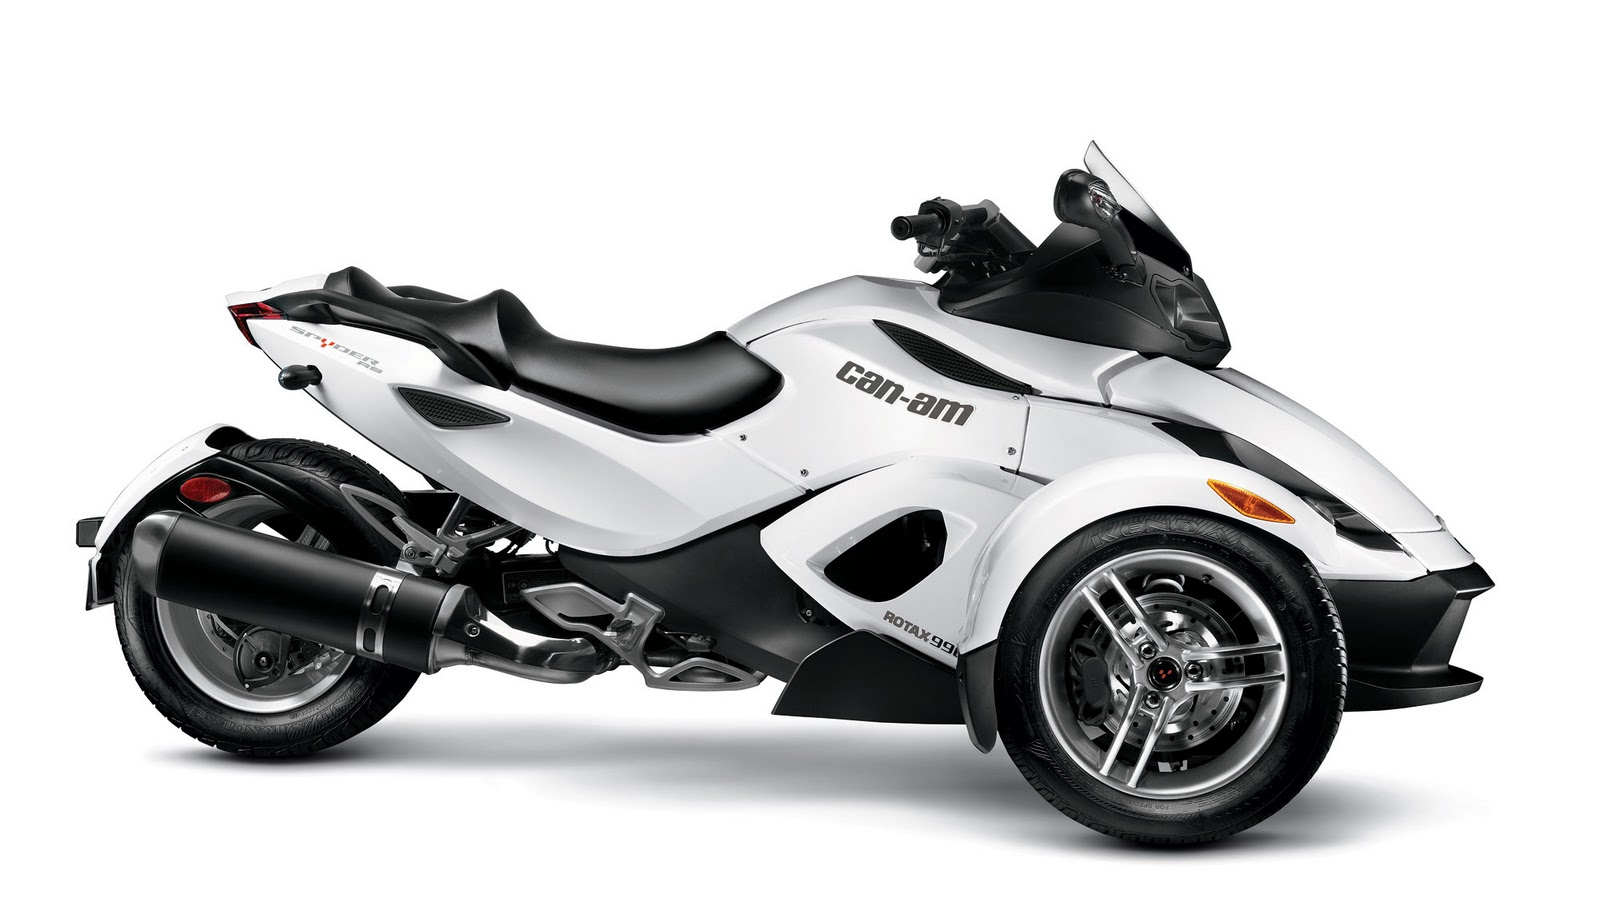 hot motorcycle models on natmotorcycle 2012 can am spyder rs cool bikes. Black Bedroom Furniture Sets. Home Design Ideas